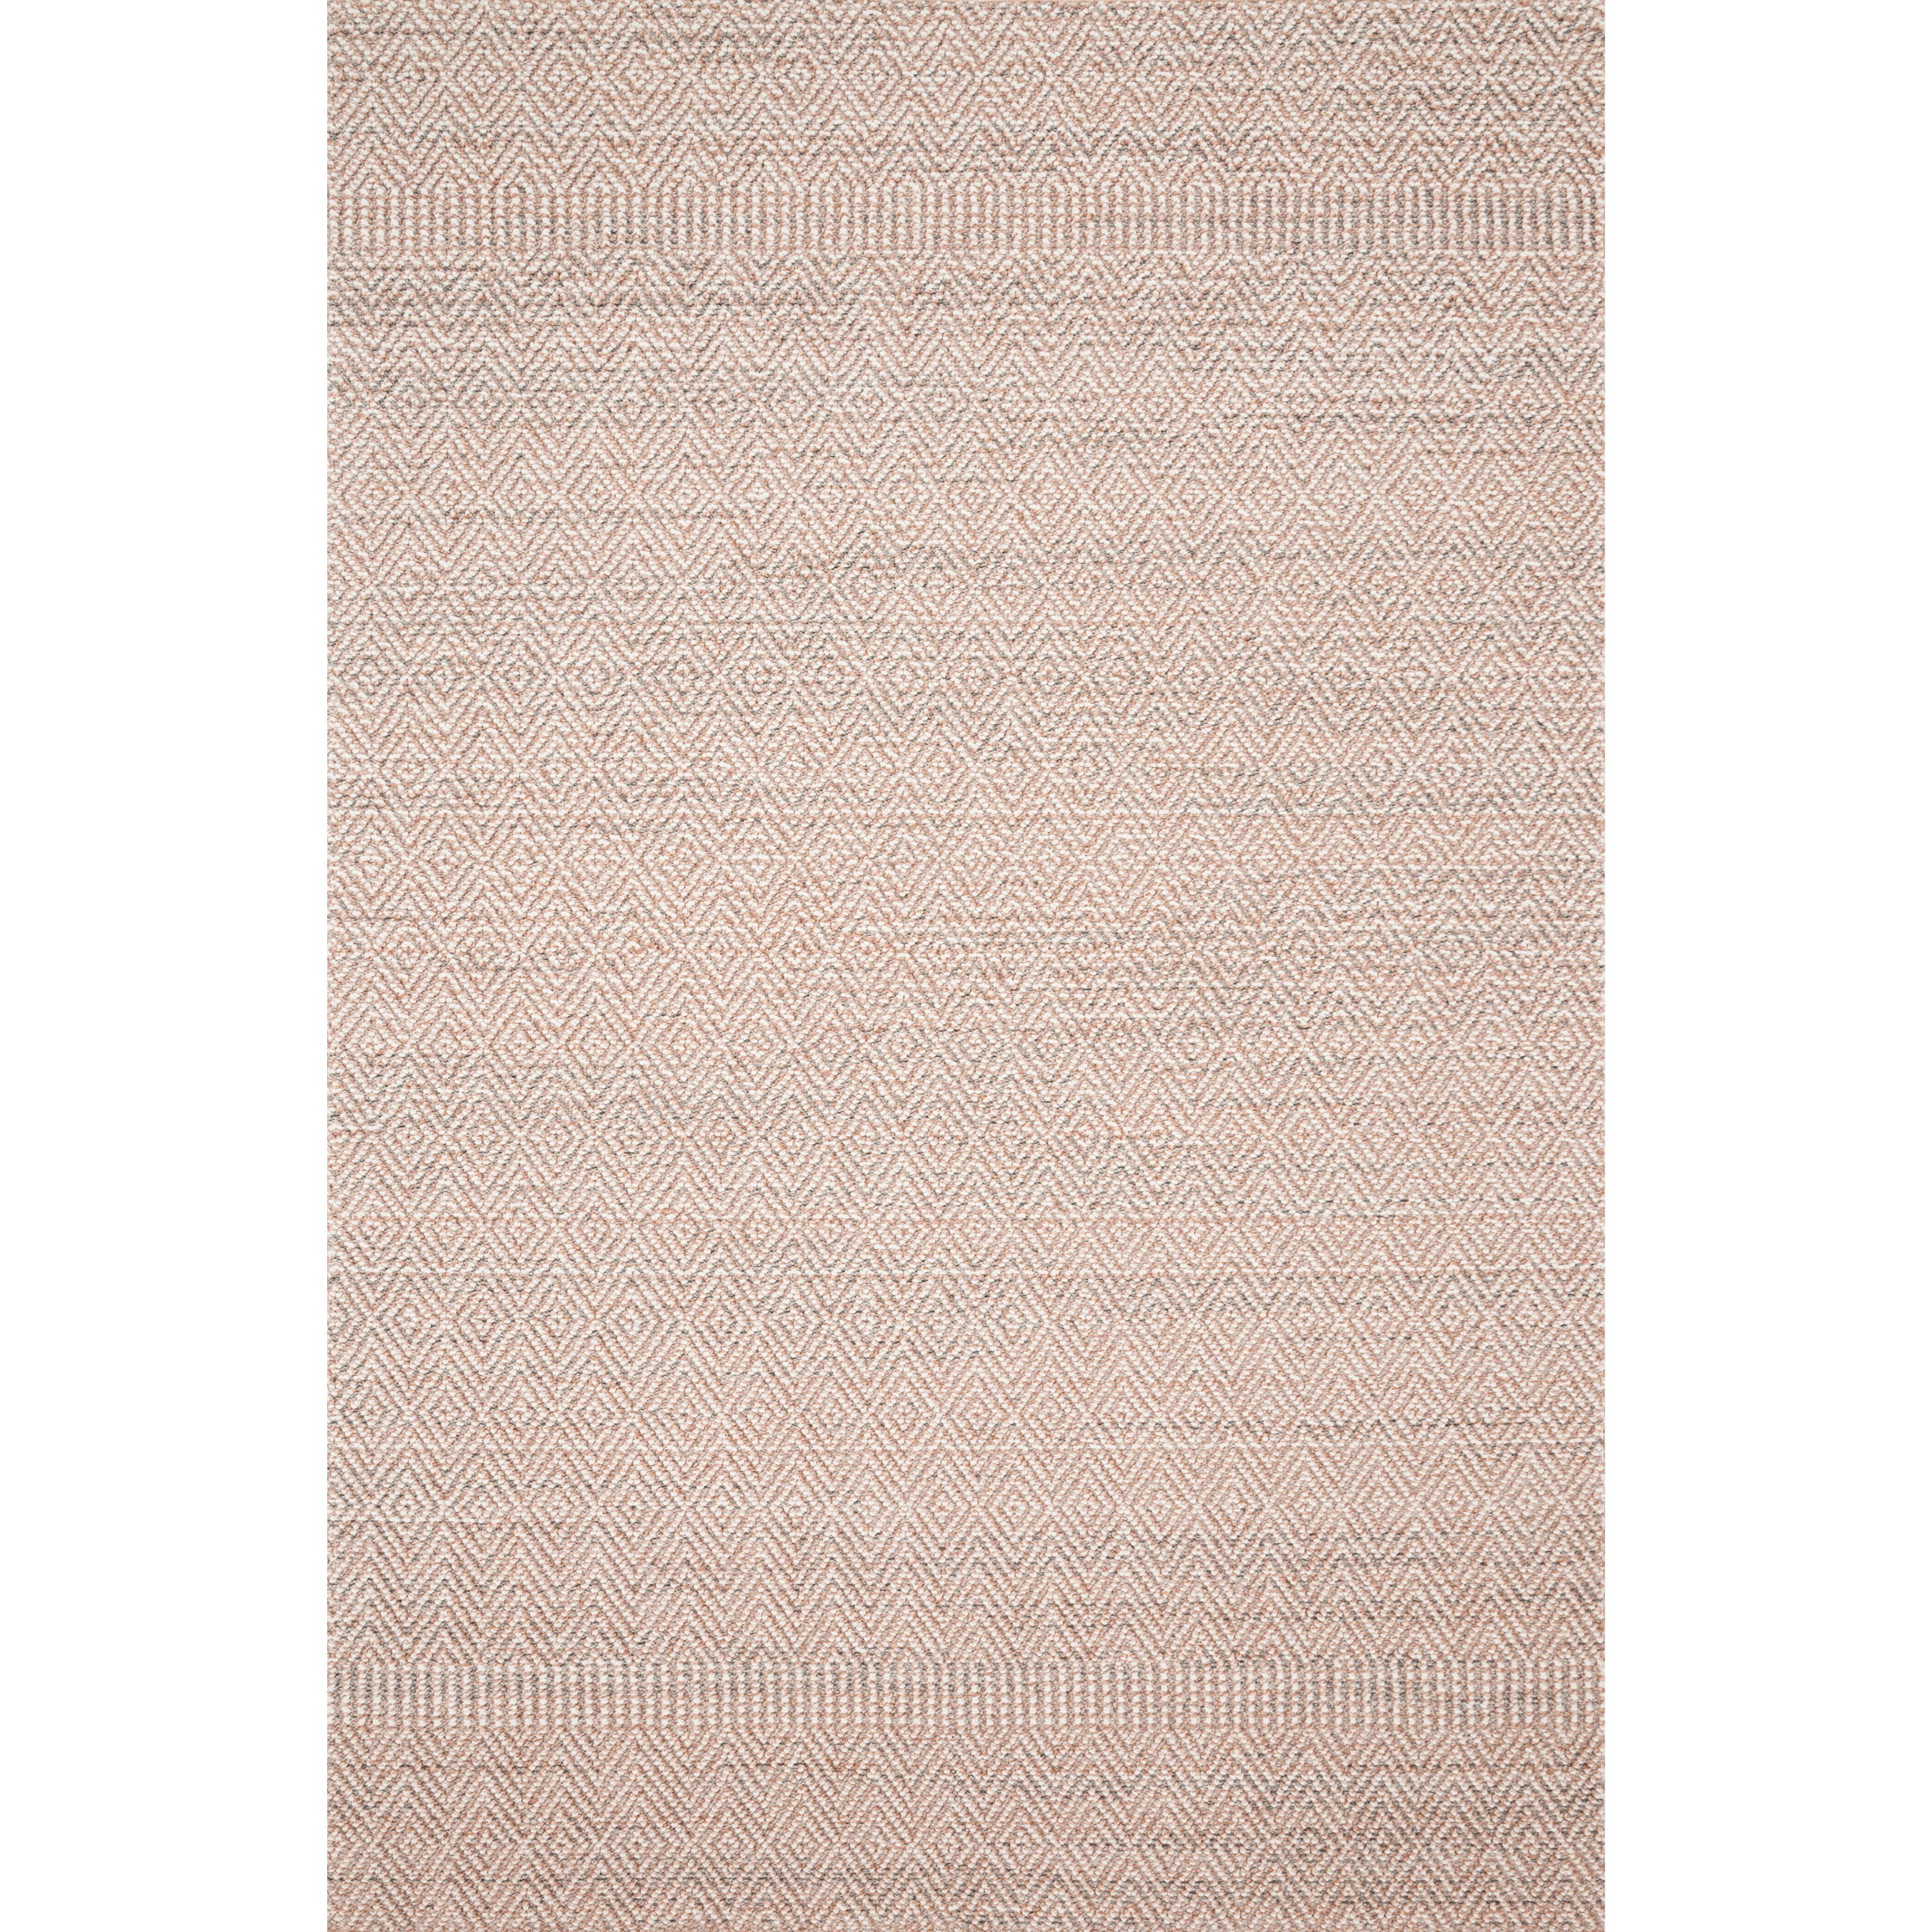 """Cole 2'7"""" x 10'0"""" Blush / Ivory Rug by Loloi Rugs at Virginia Furniture Market"""